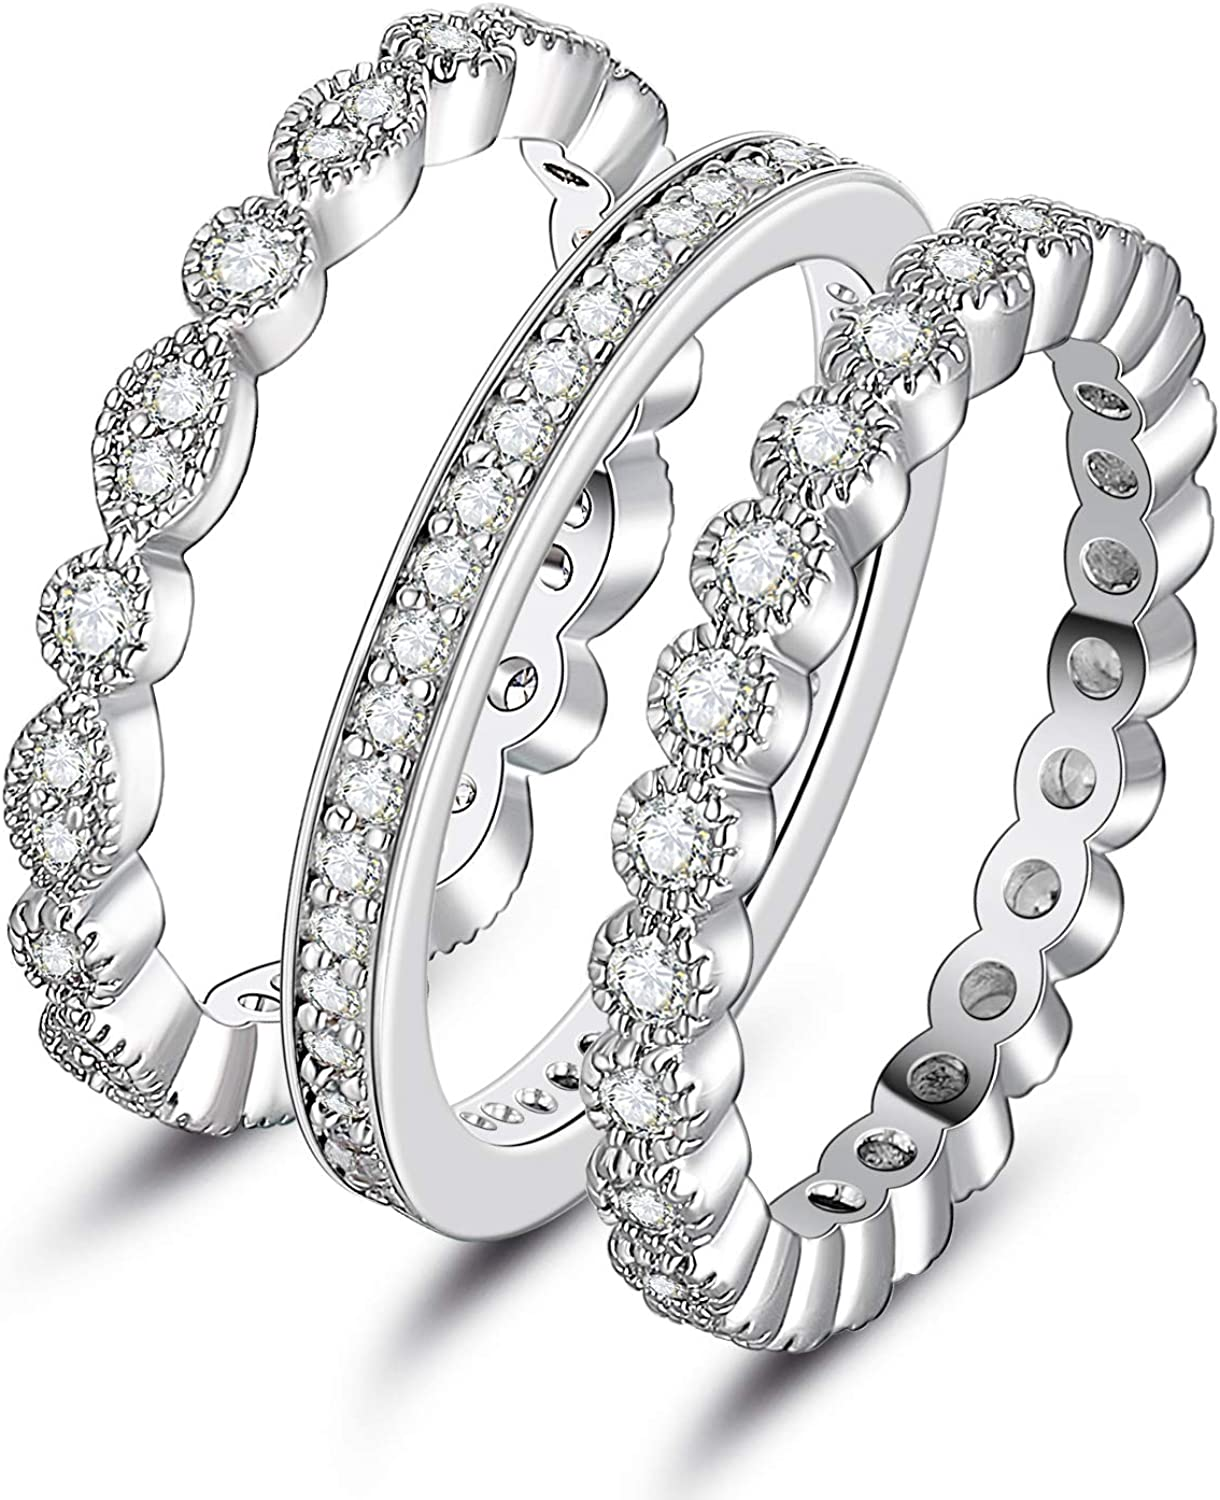 XBRN 3Pcs 2mm Women Stackable Eternity Ring Wedding Bands,18K White Gold Plated Cubic Zirconia Rings Pack